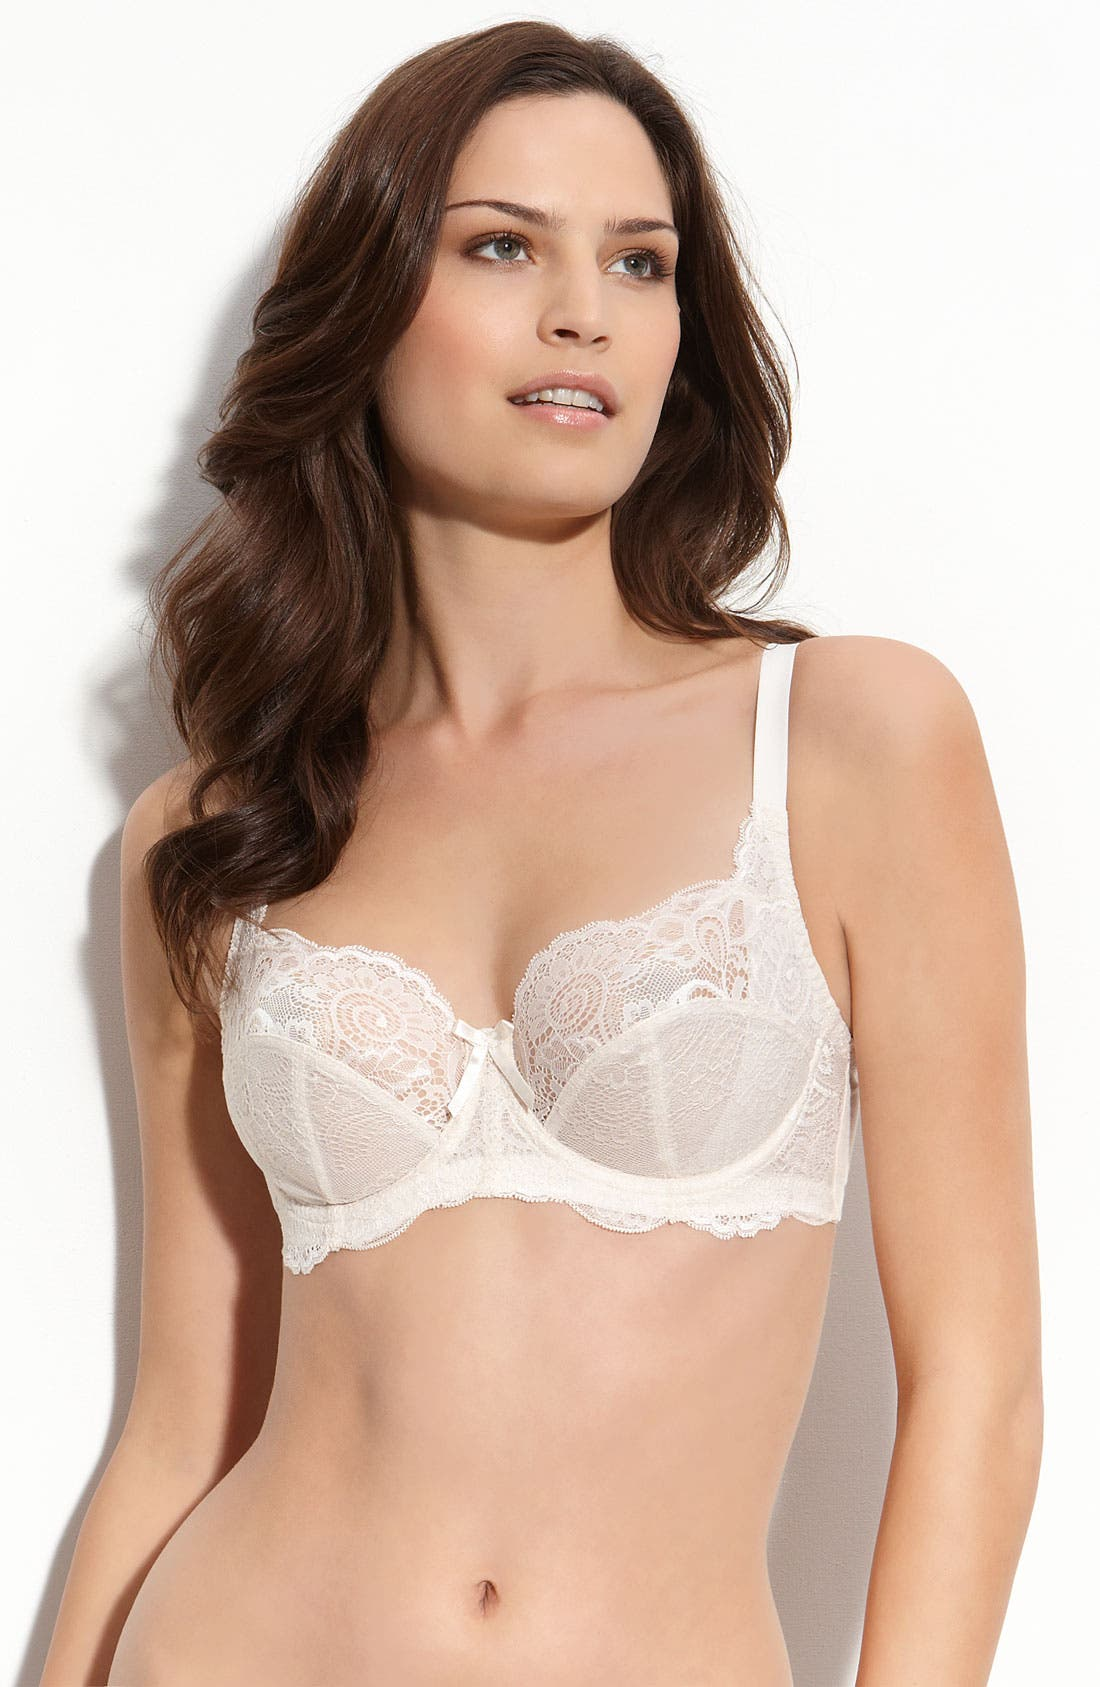 Alternate Image 1 Selected - Panache Lingerie 'Andorra' Underwire Bra